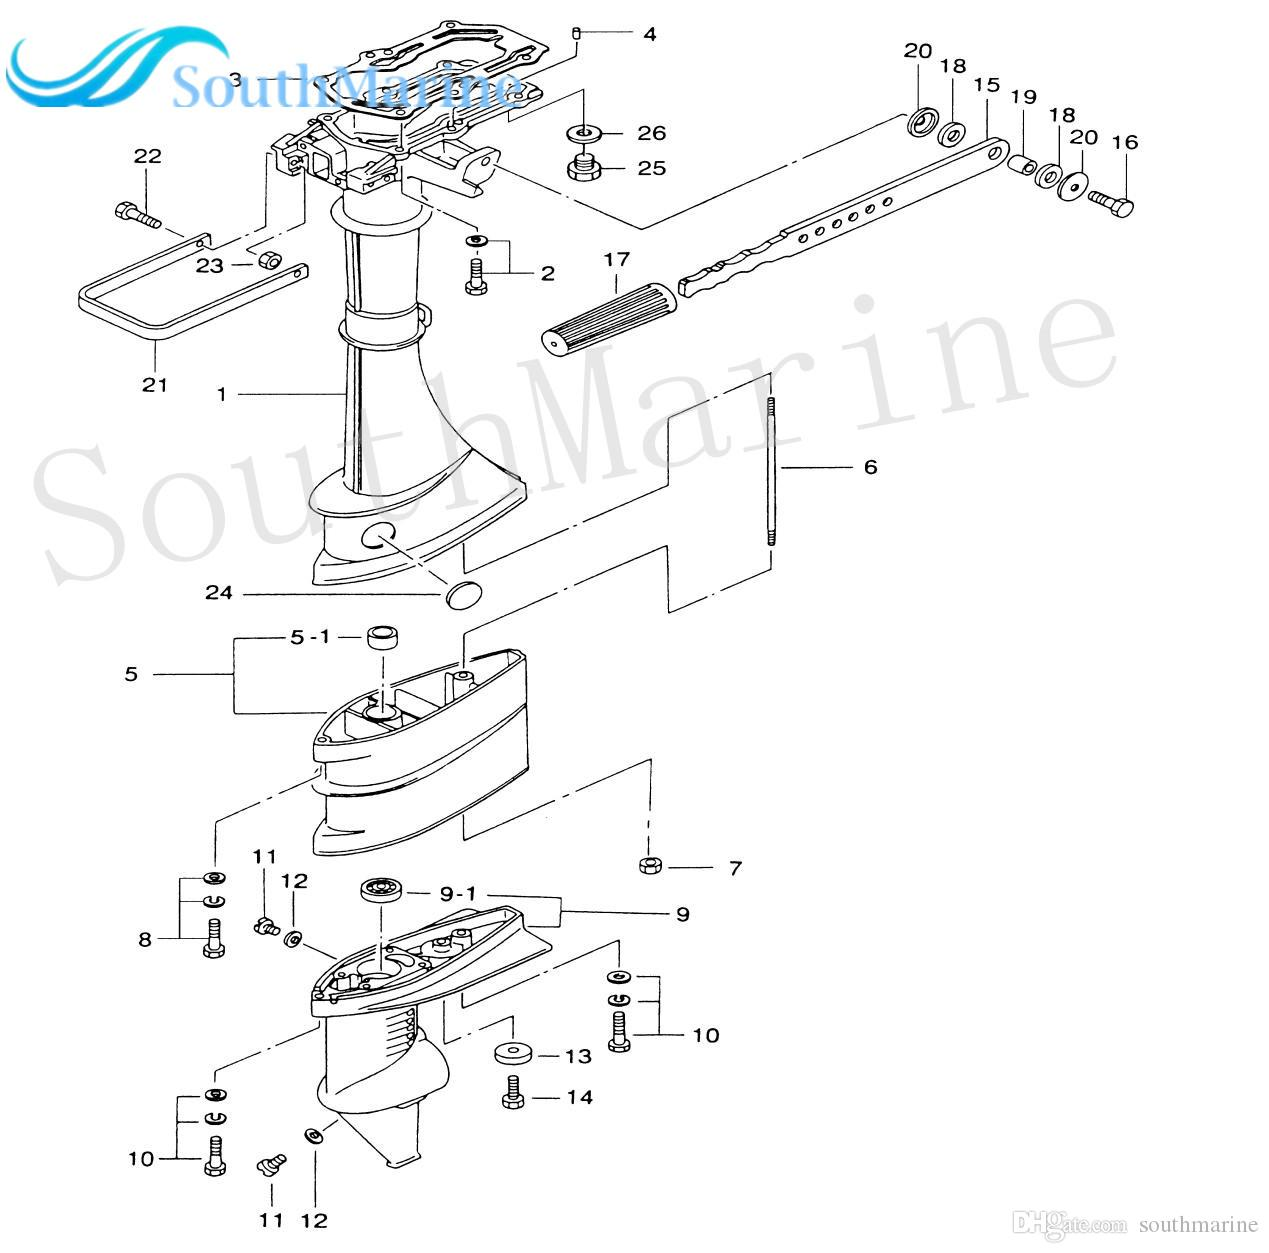 nissan outboard motor parts diagram wallpaperzen org